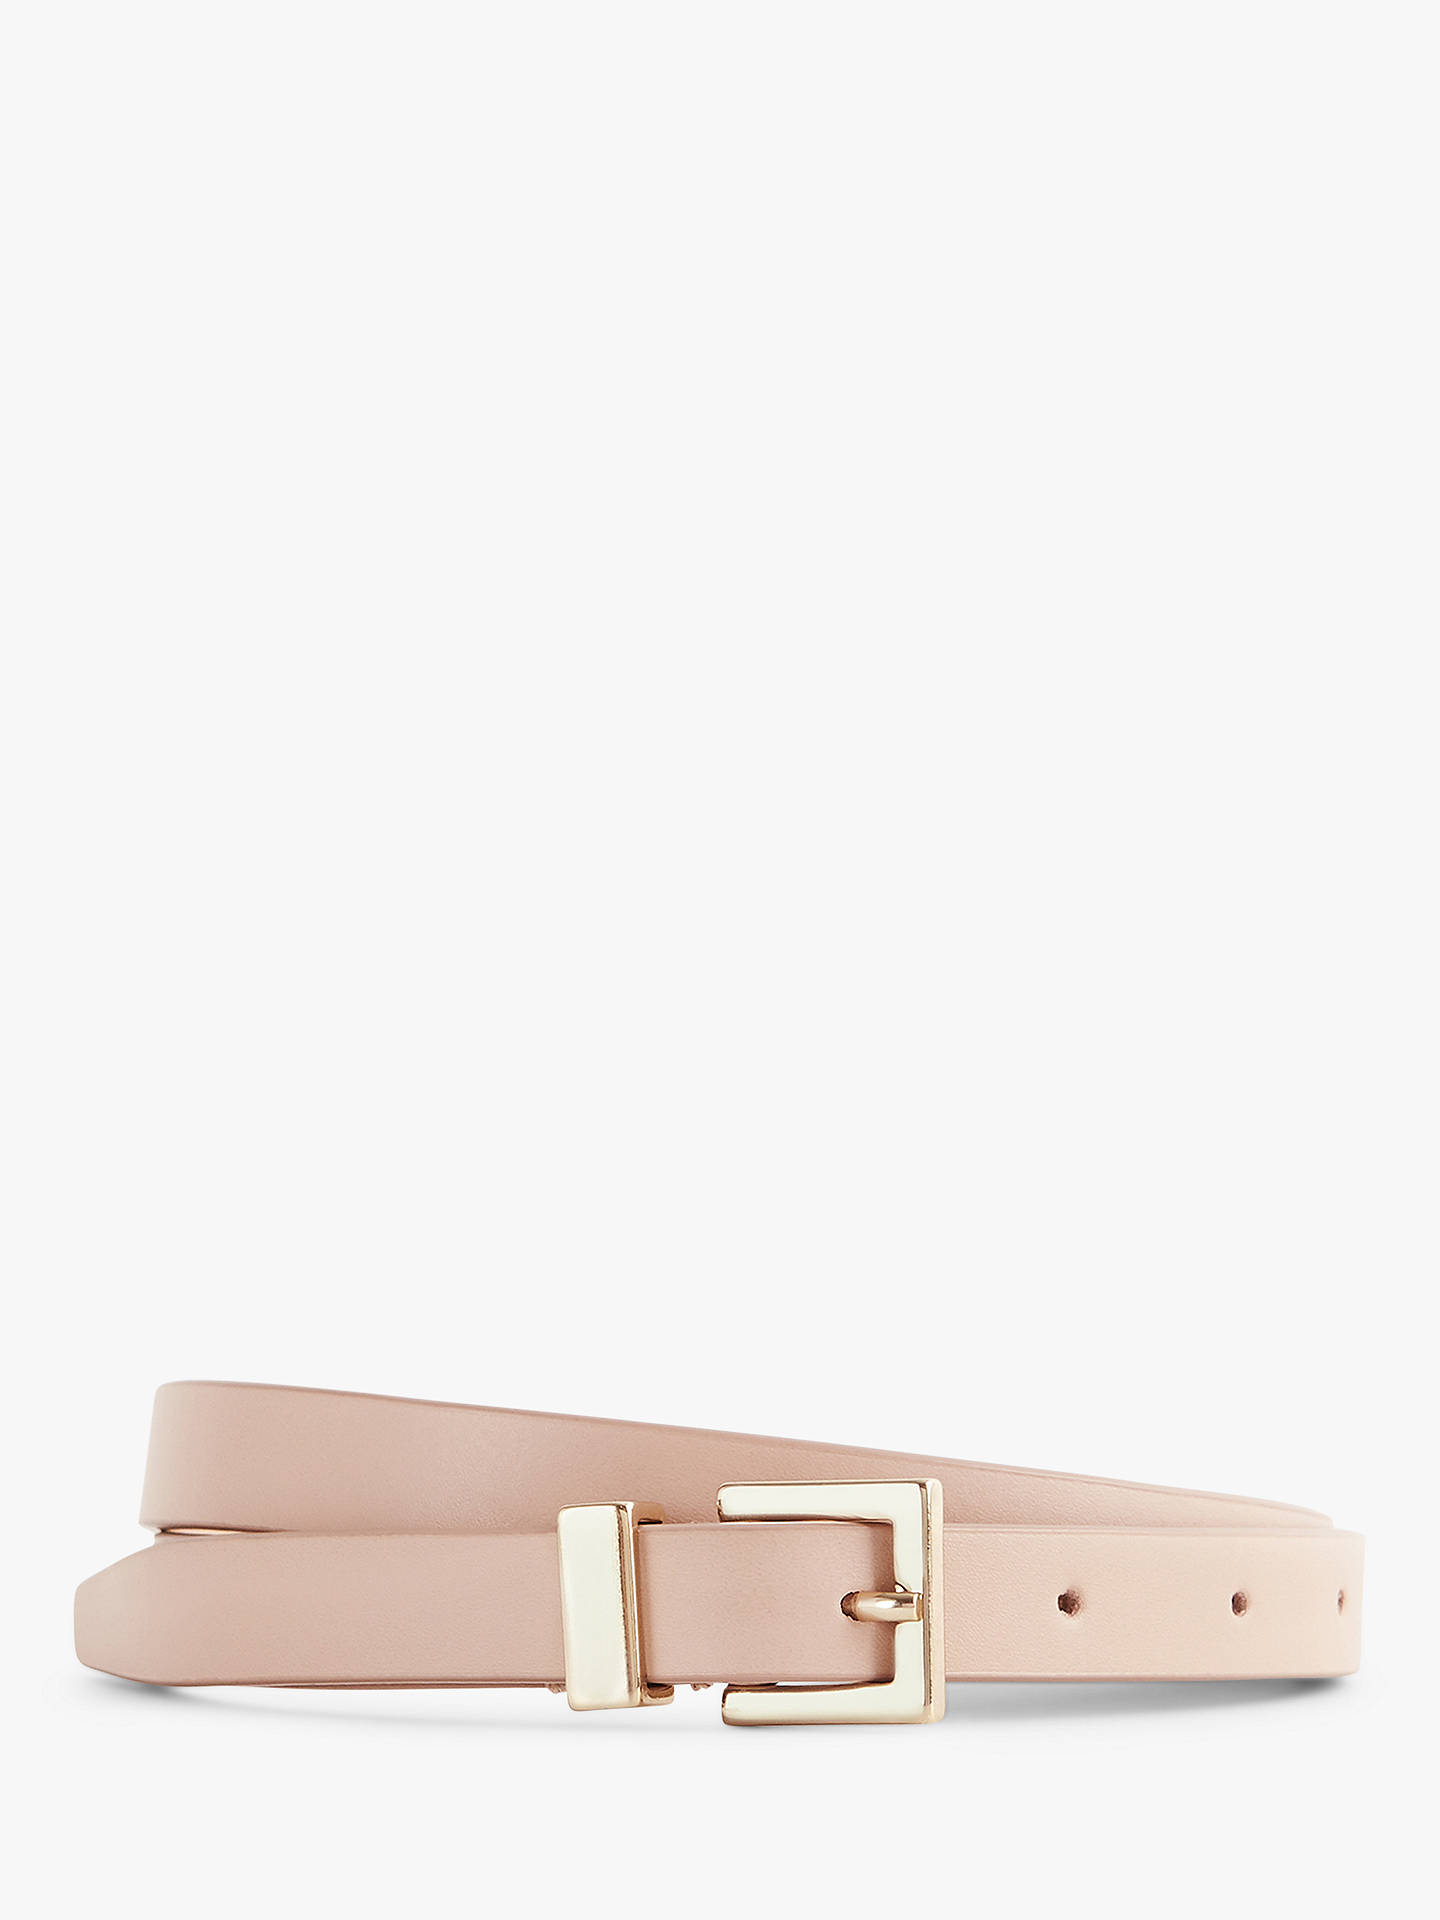 Buy Reiss Blossom Leather Skinny Belt, Nude, M Online at johnlewis.com